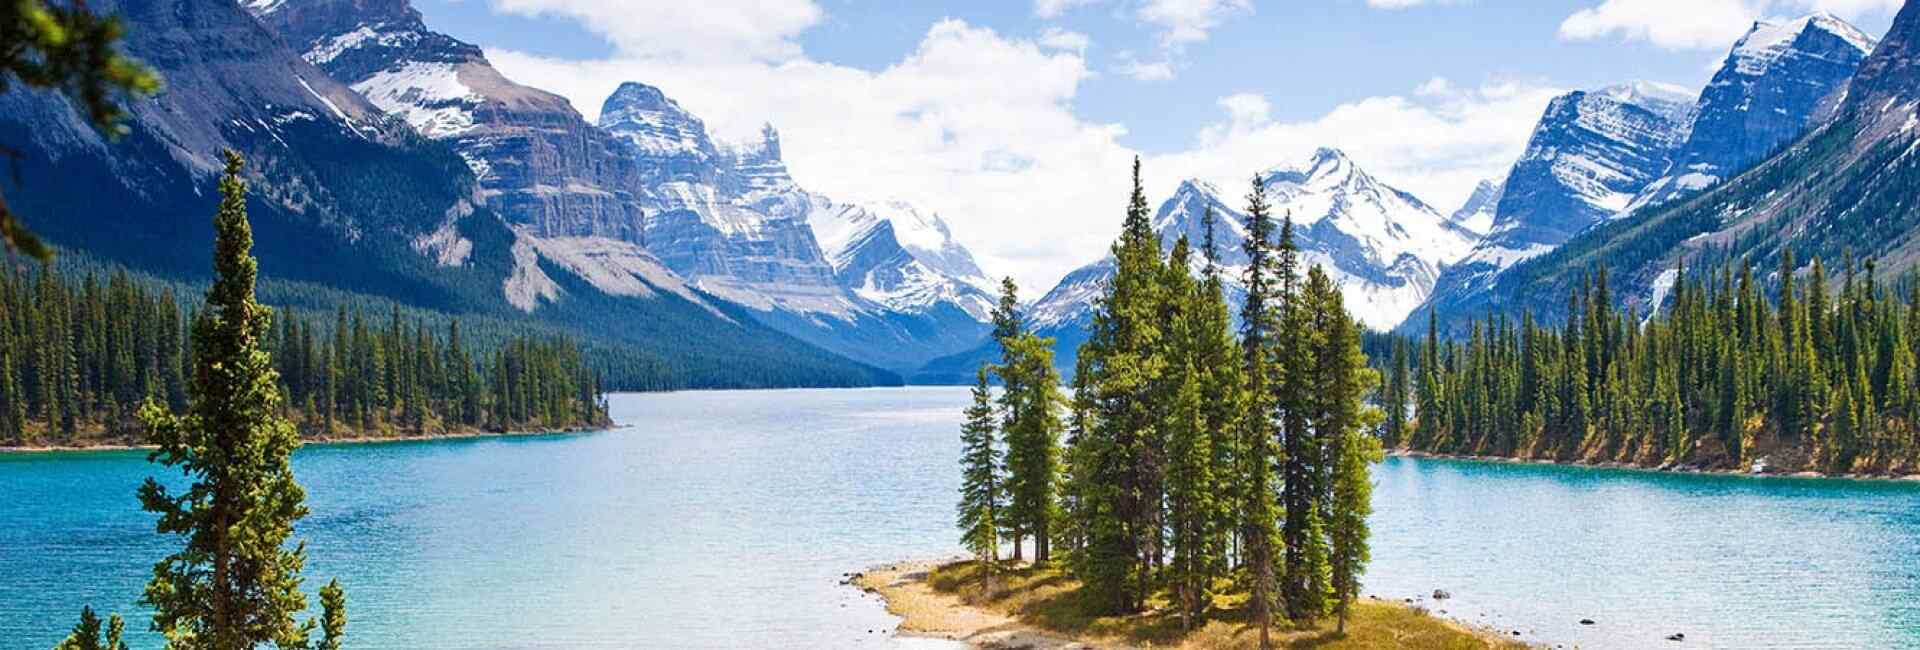 western canada discovery